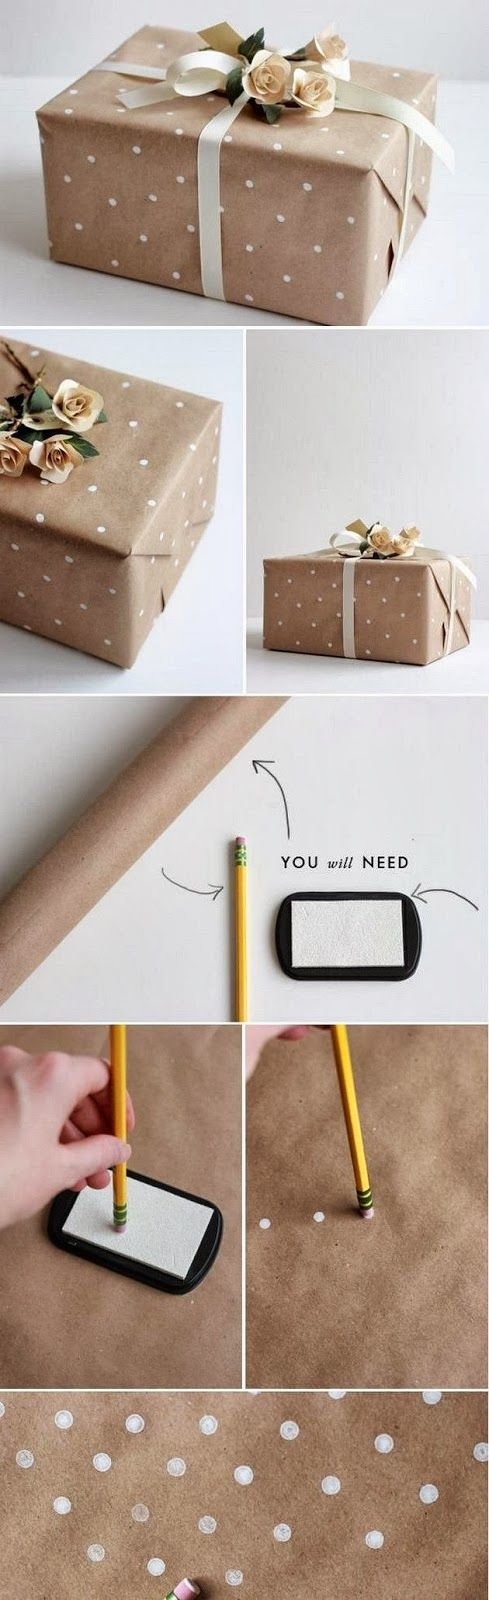 Pens to Pixels: DIY: Wrapping Wednesday 2